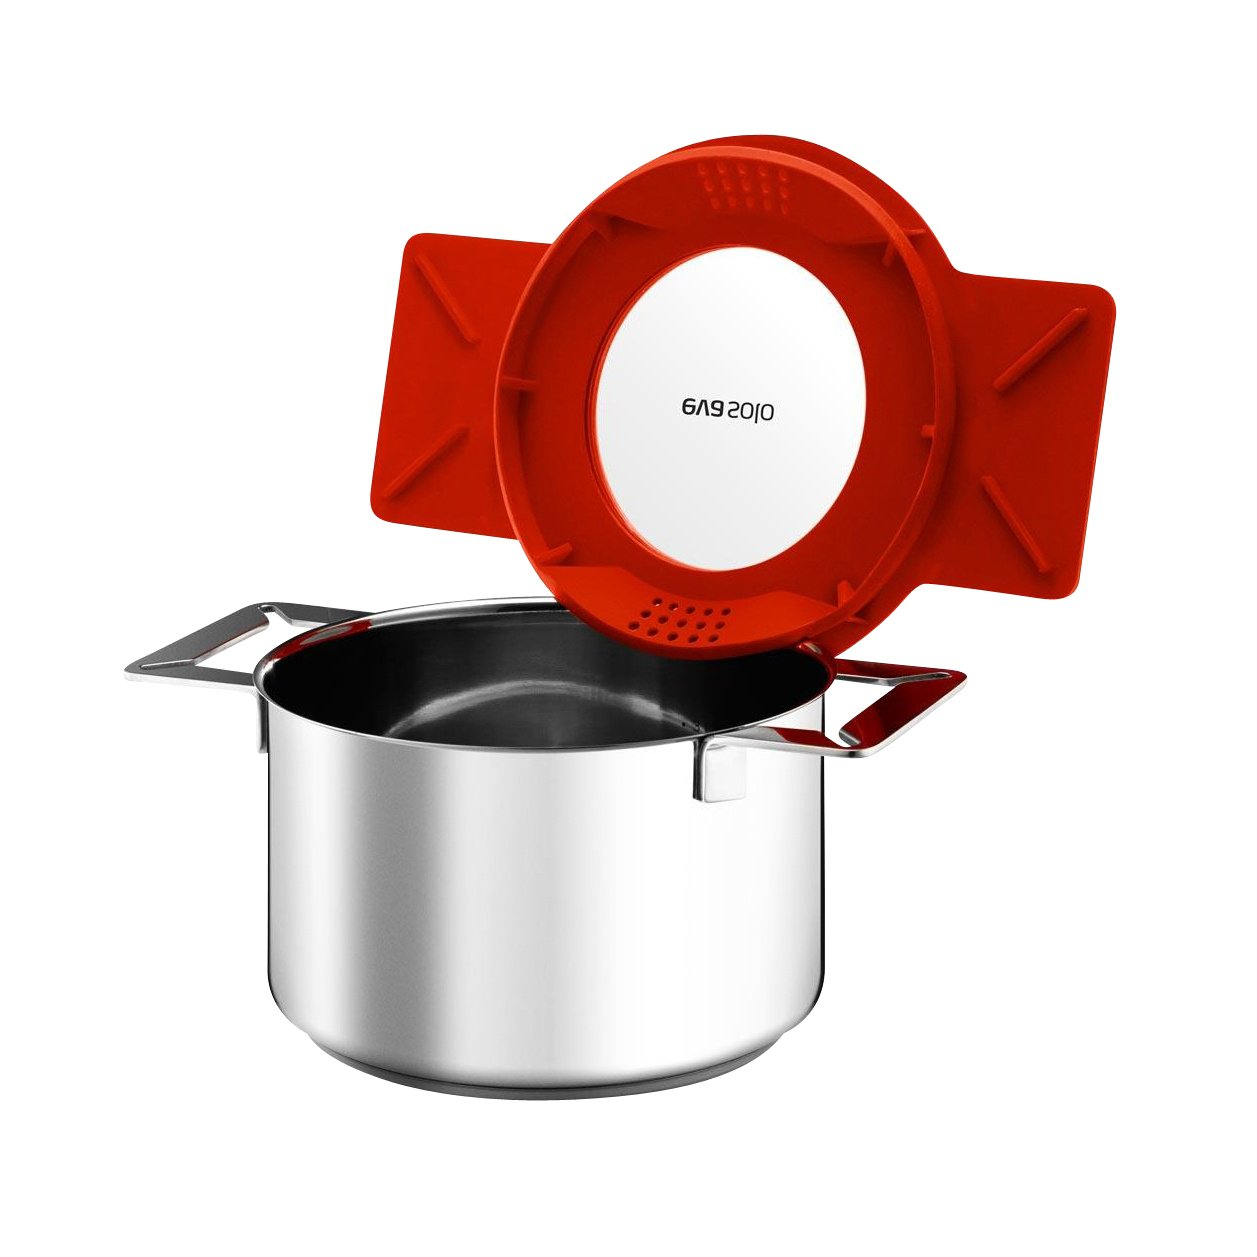 Eva Solo Gravity Cookware - Stainless Steel Diswasher Safe Sauce Pan with Multifunctional Lid (2-Liter Saucepan)